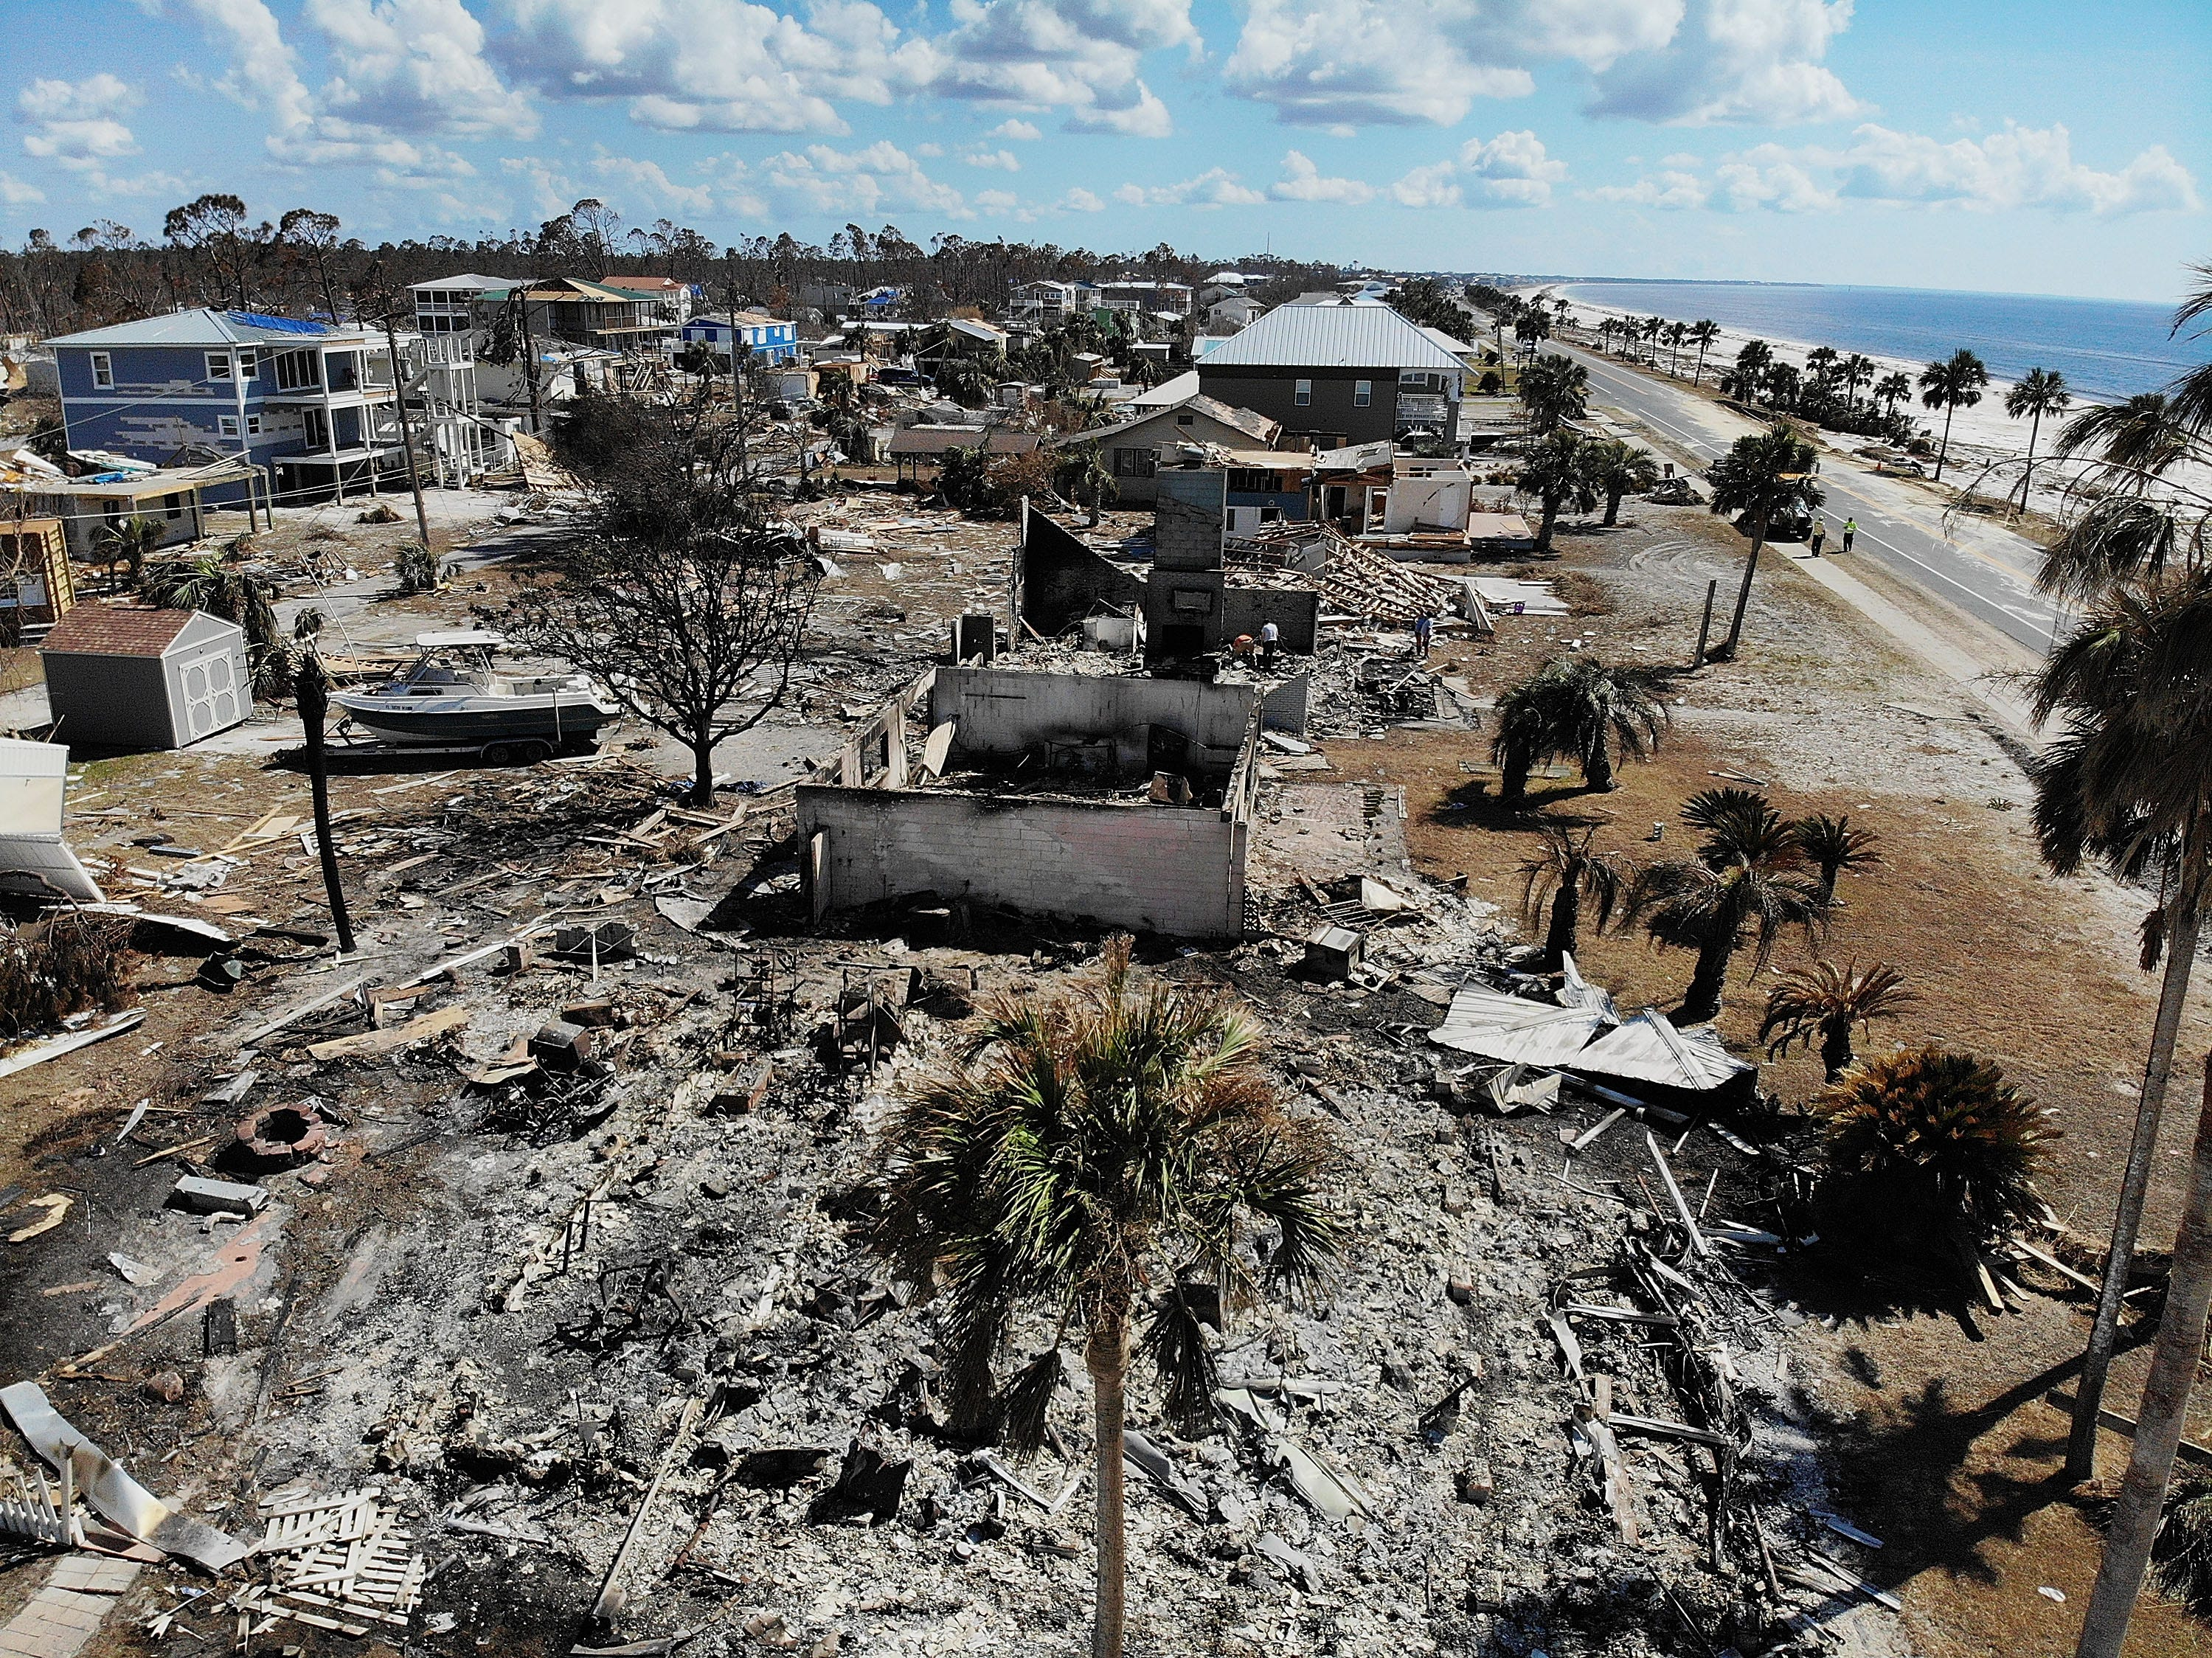 The aftermath of hurricane Michael is seen on Oct. 17, 2018 in Mexico Beach, Fla. The hurricane hit on October 10th along the Florida Panhandle as a category 4 storm causing massive damage and claimed the lives of more then a dozen people.